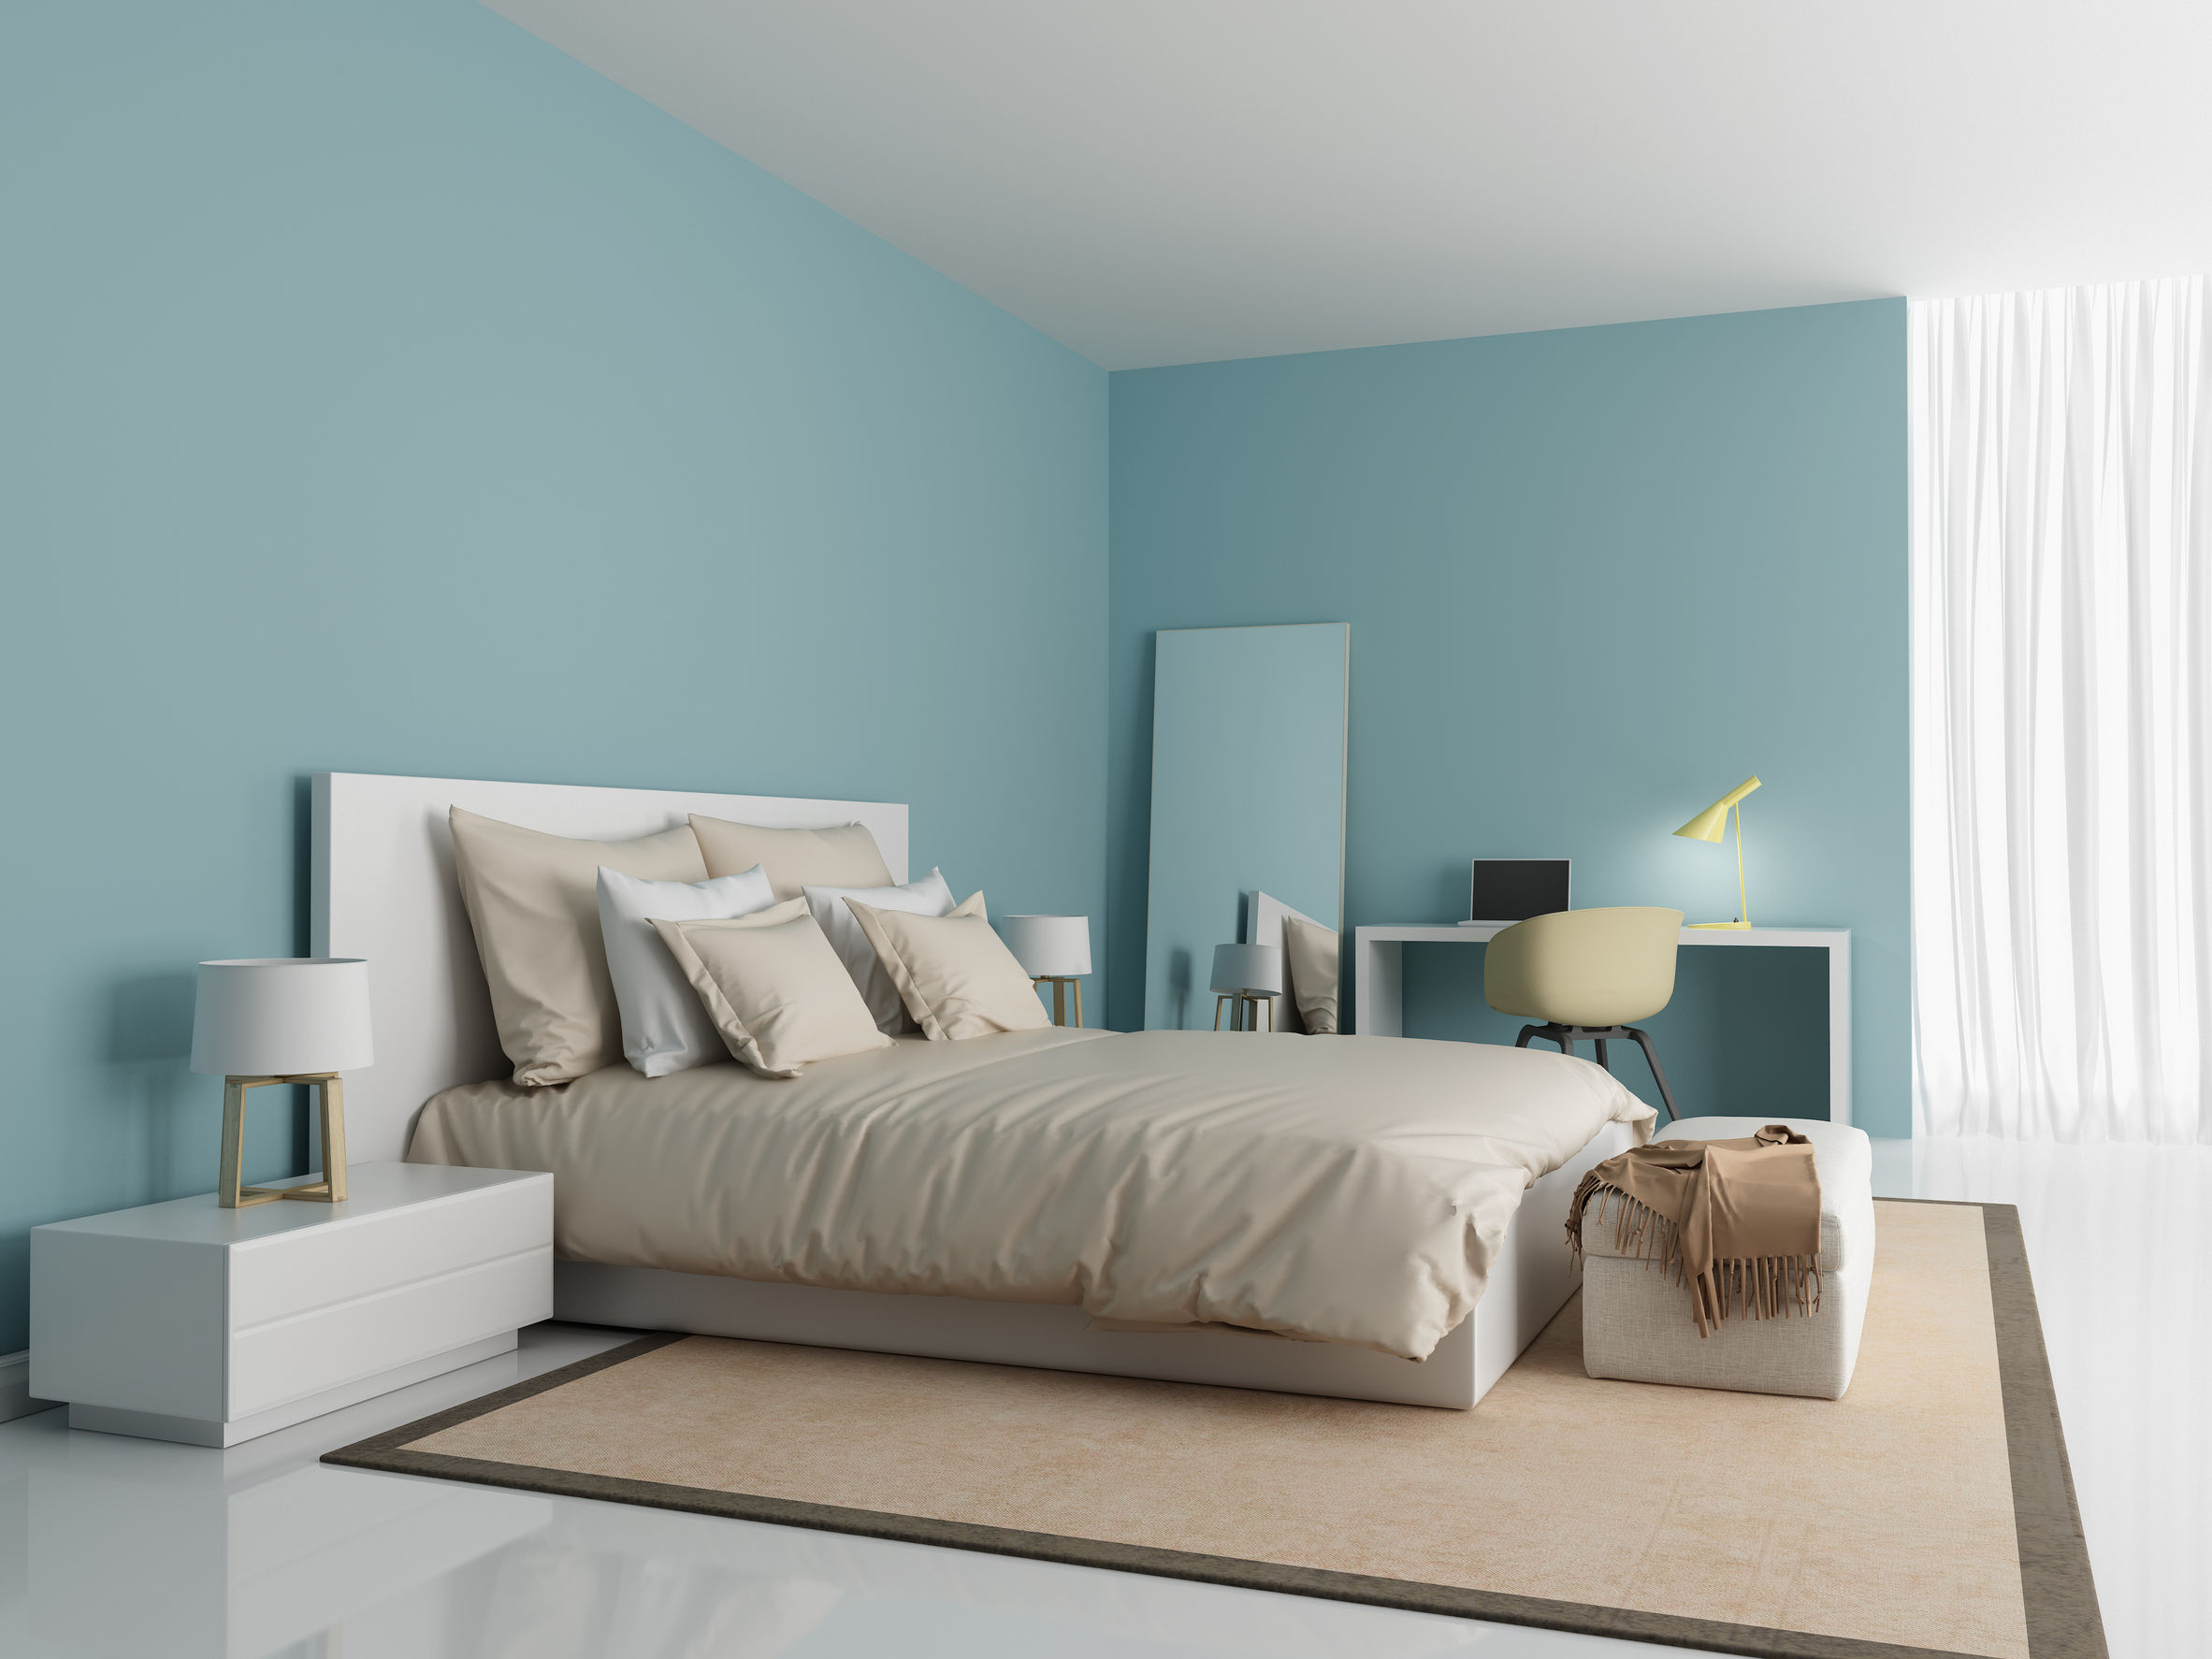 Recolor To Relax! Here Are 5 Soothing Colors You Can Apply To Your Bedroom